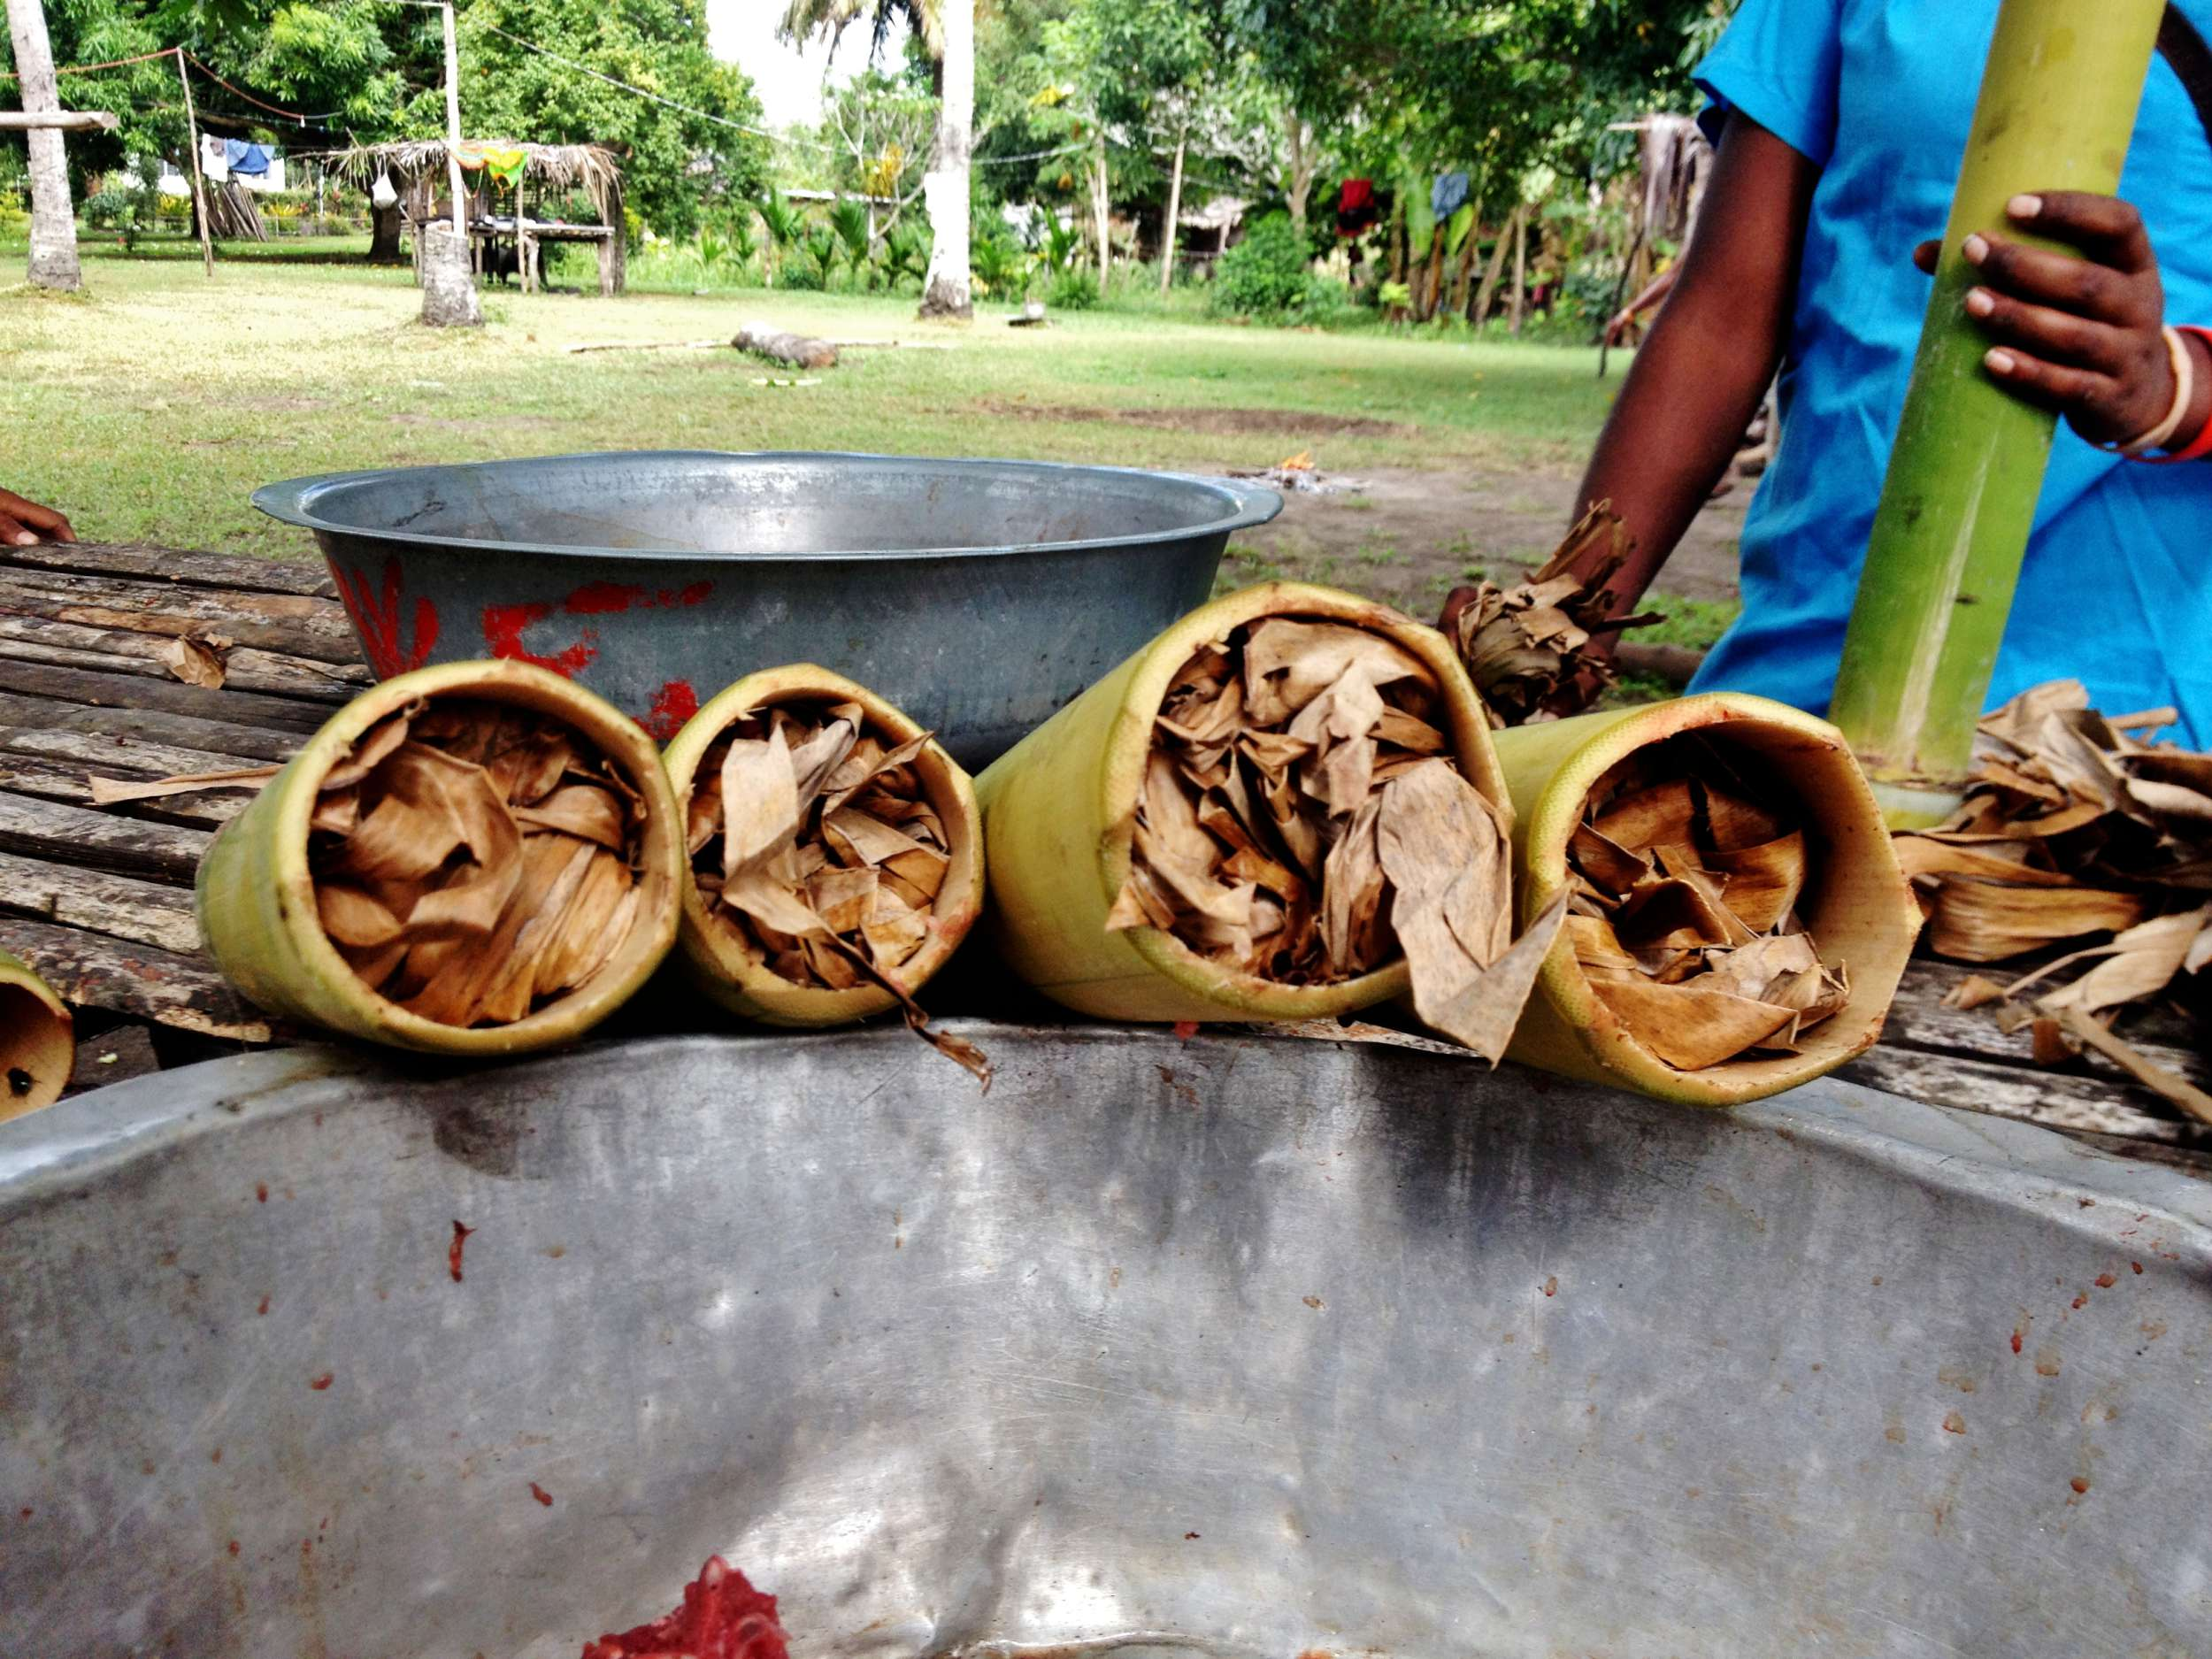 The ends were stuffed tight with banana leaves.